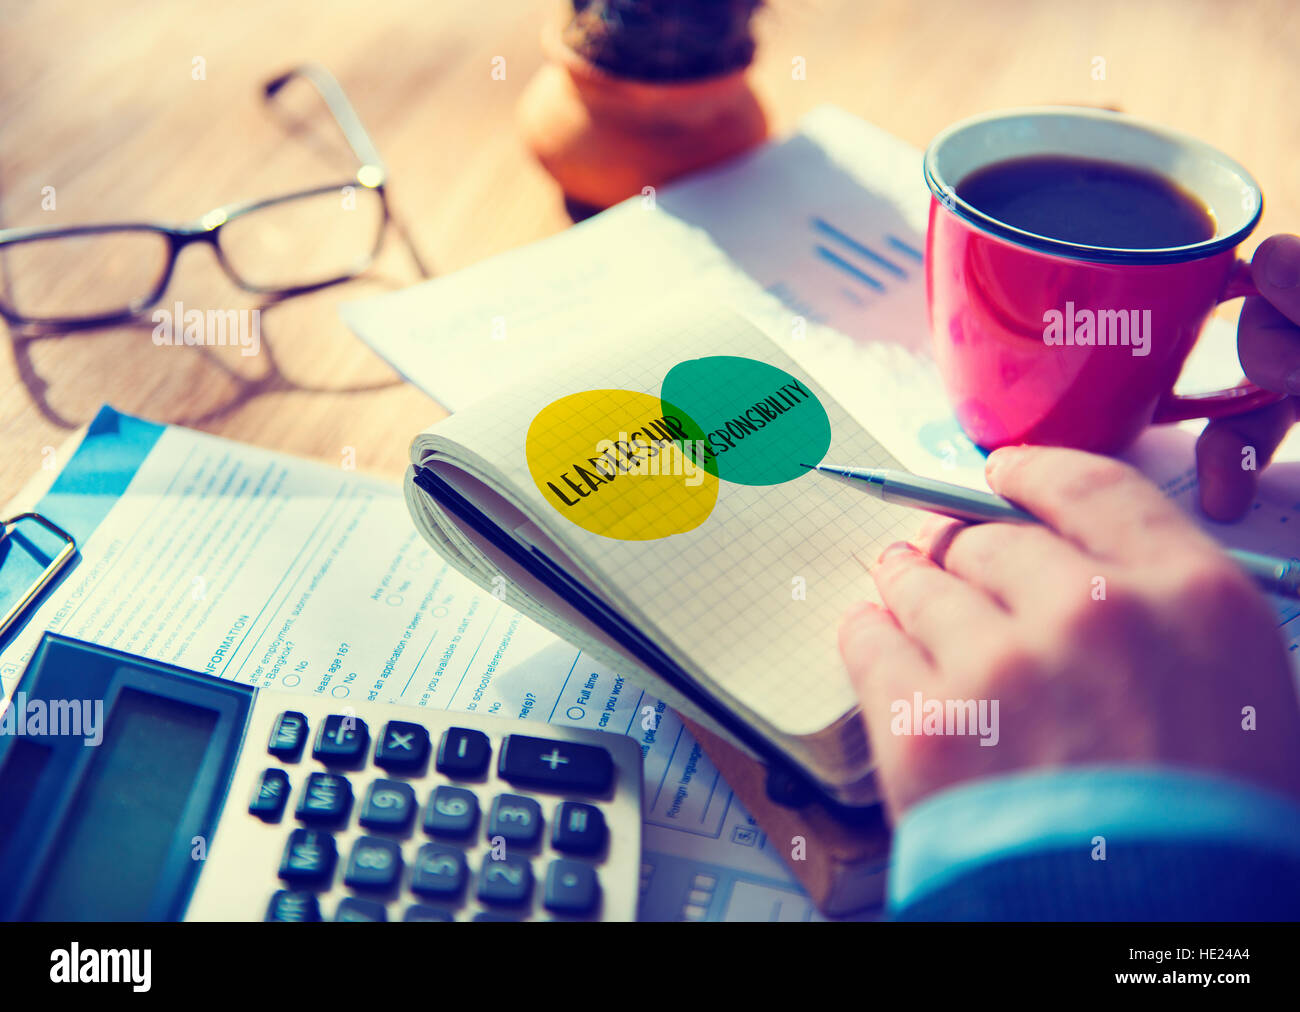 Leadership Goals Ideas Motivation Circles Concept - Stock Image